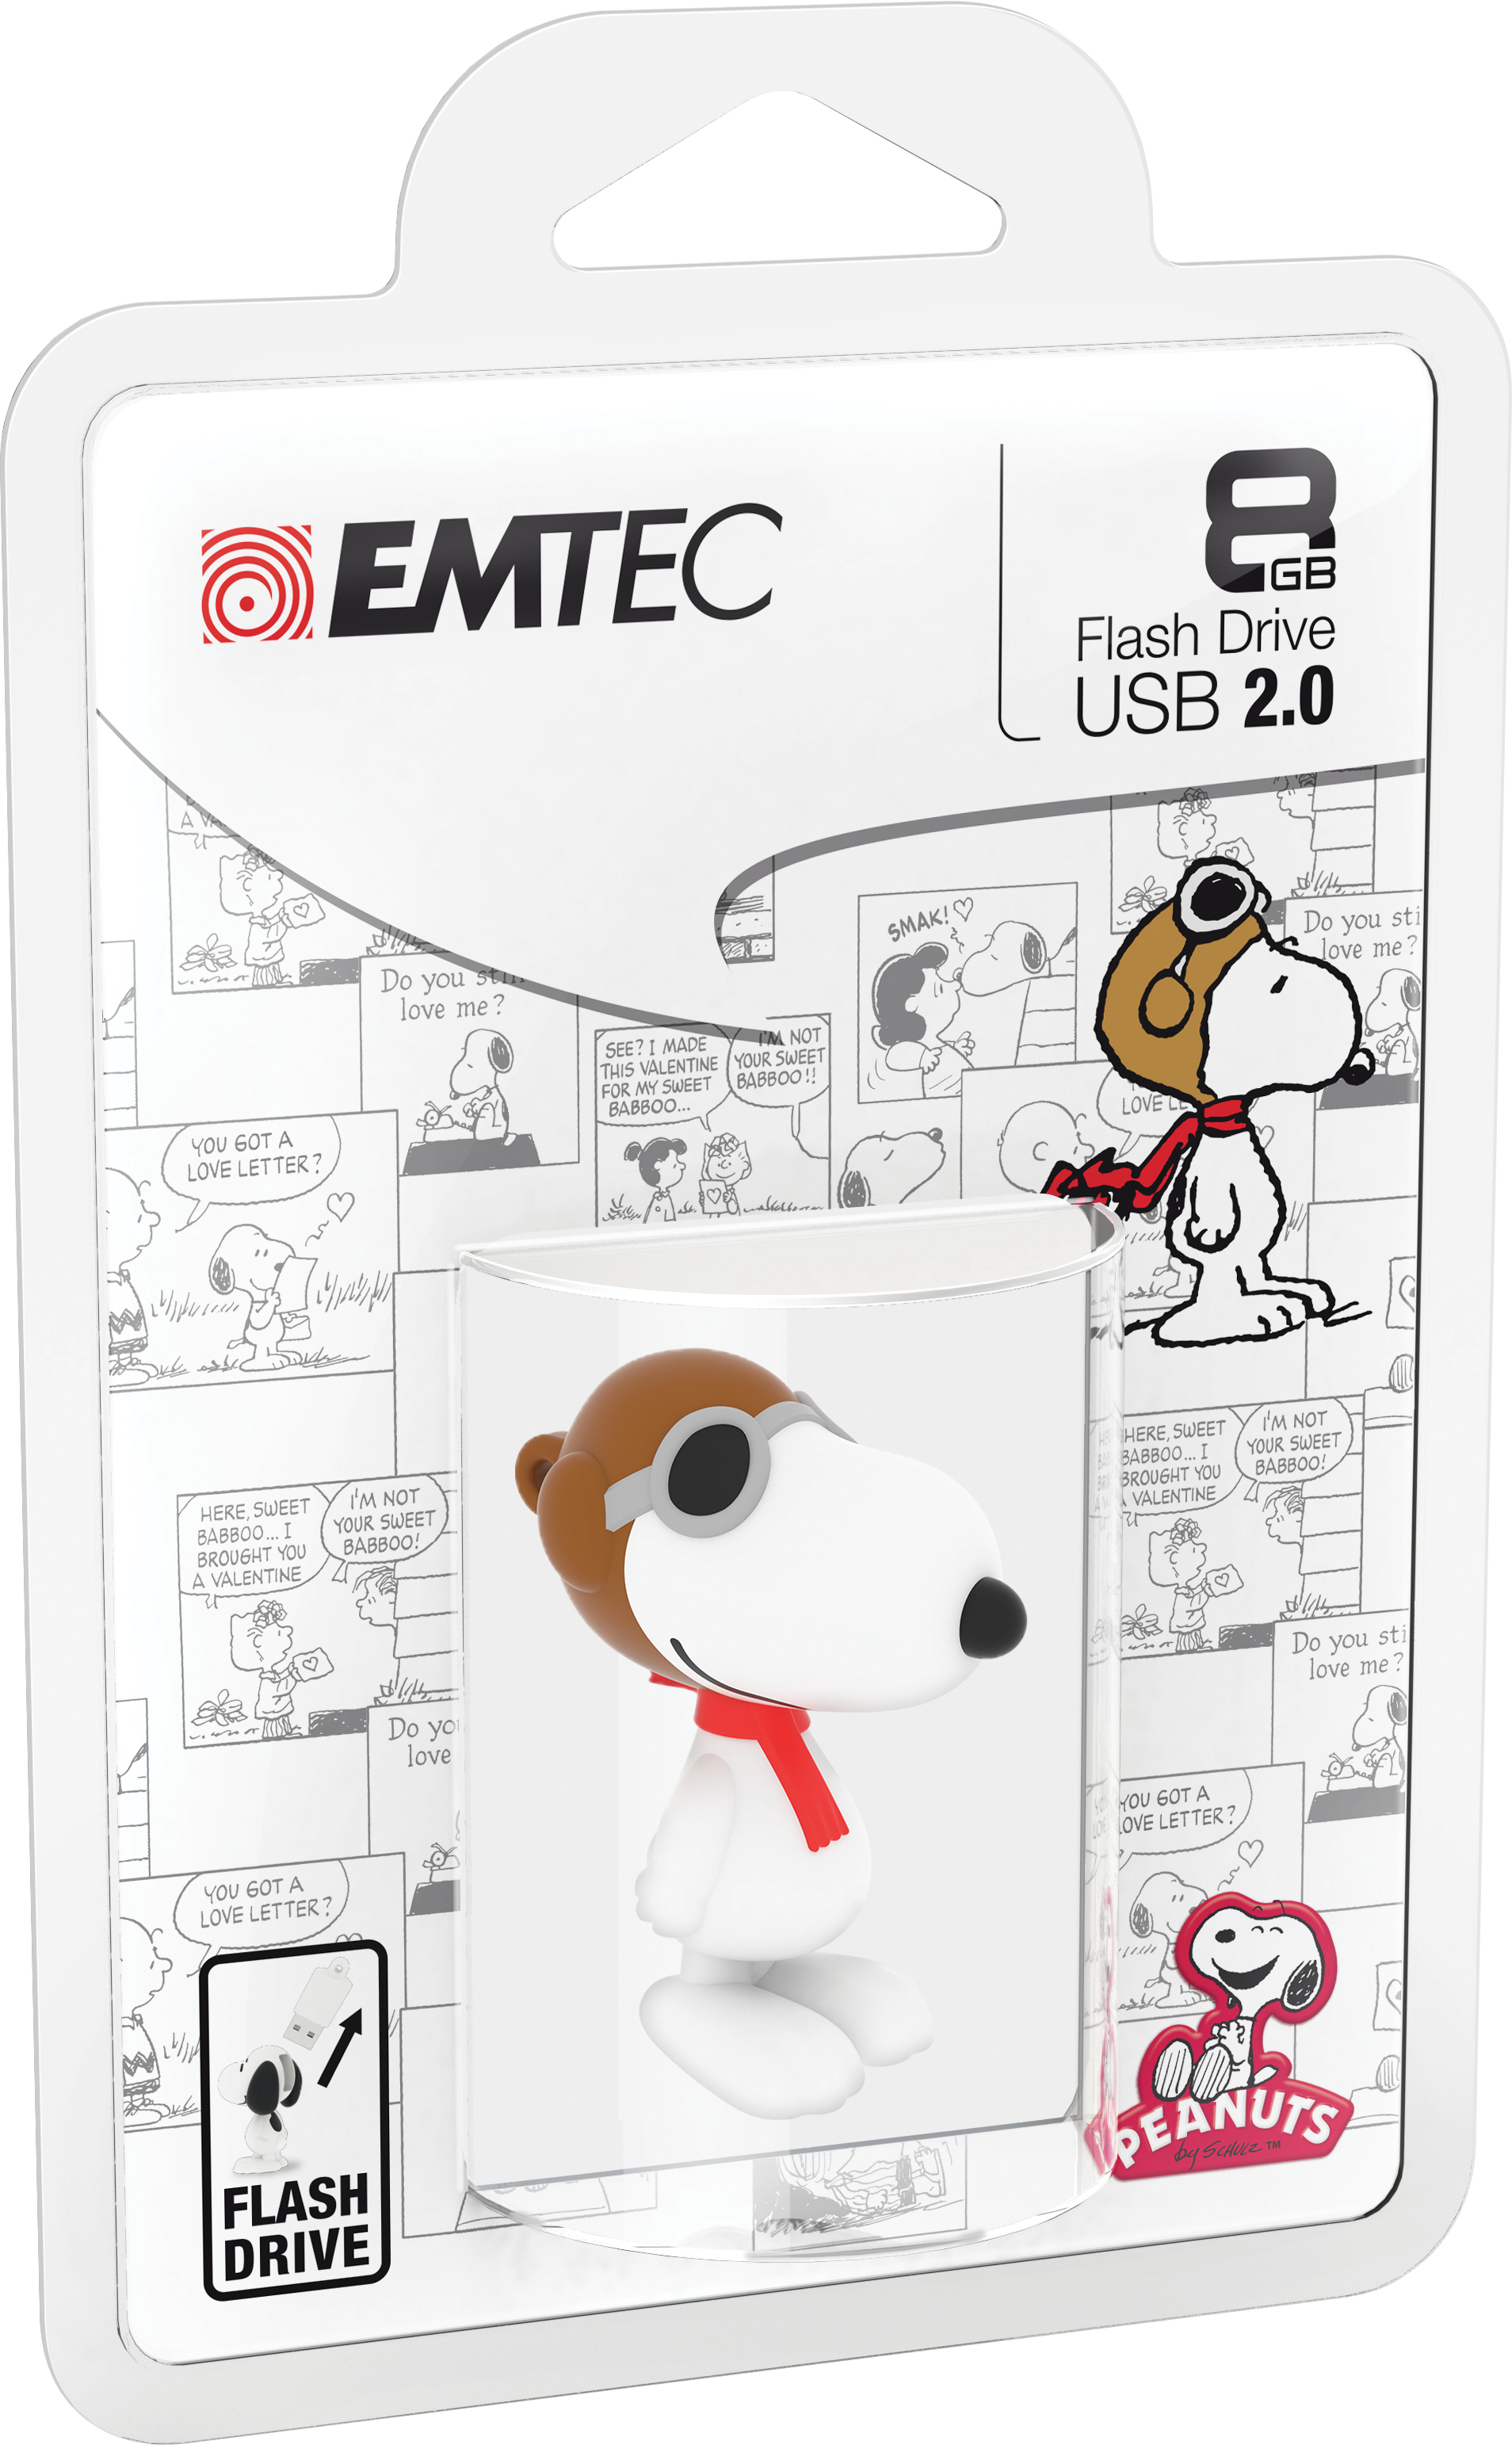 Emtec Peanuts Snoopy Flying Ace 8GB 8GB USB 2.0 Type-A Brown,White USB flash drive